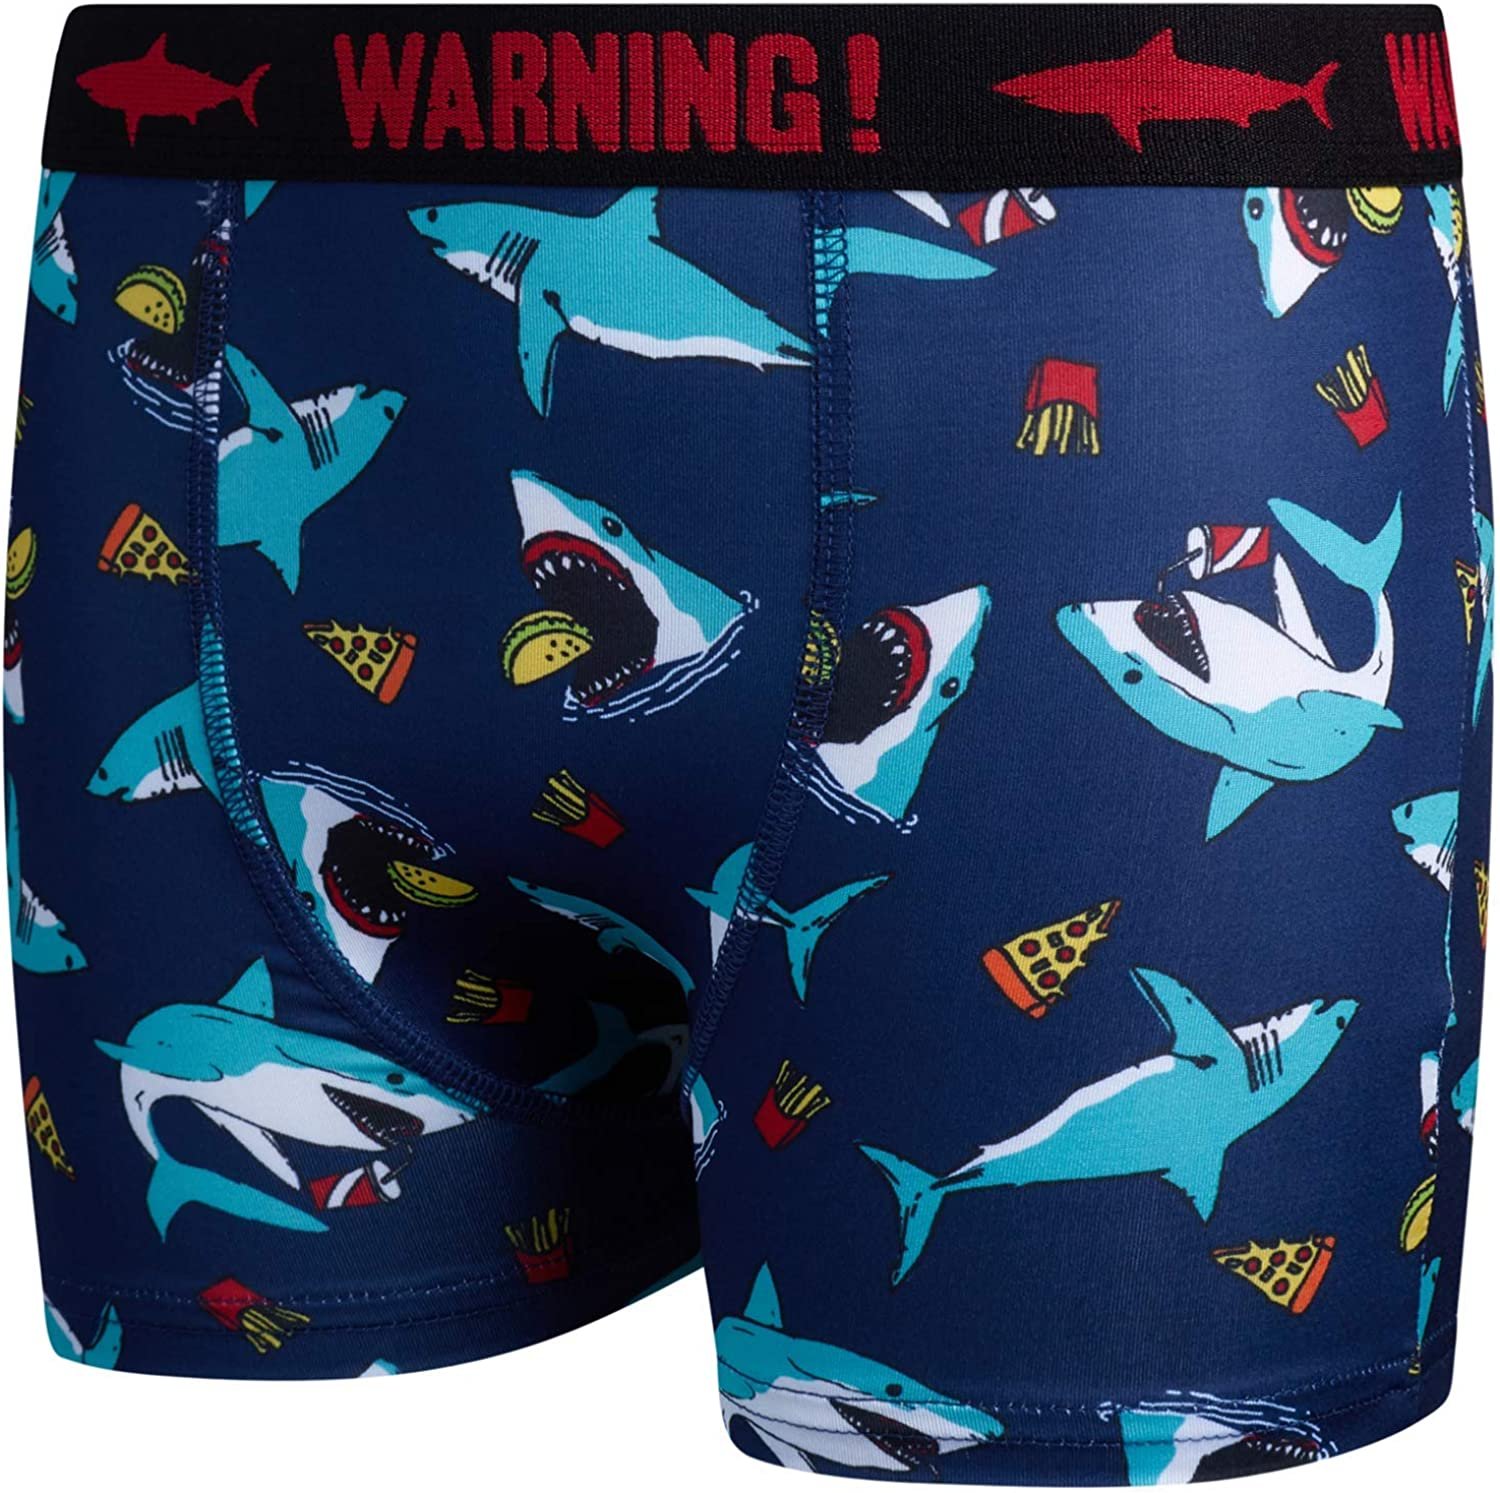 Only Boys Compression Shorts - Boys' Dry Fit Performance Boxer Briefs Active Underwear (6 Pack)